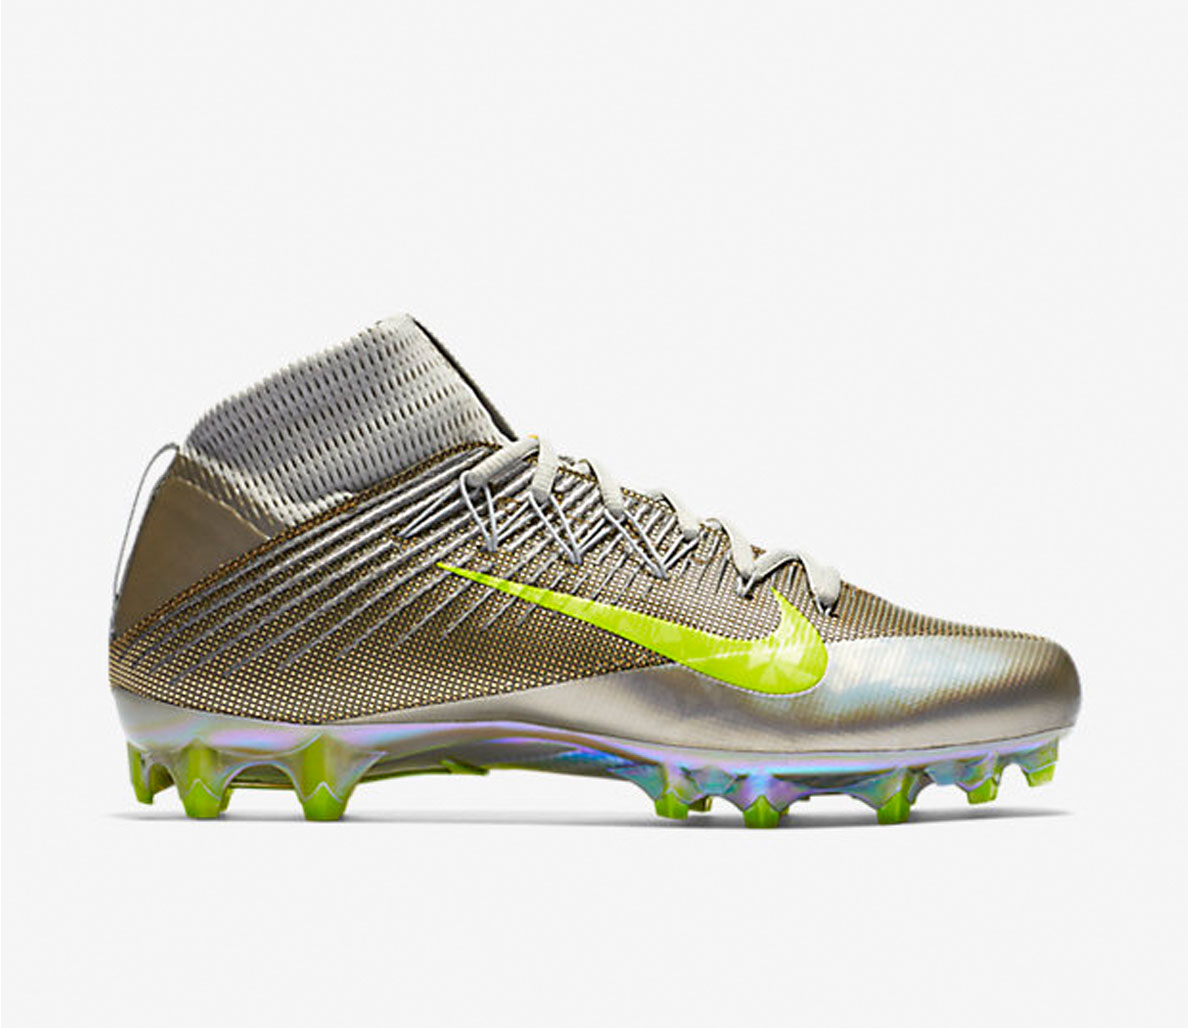 The 10 Coolest Football Cleats for the 2016-2017 Season